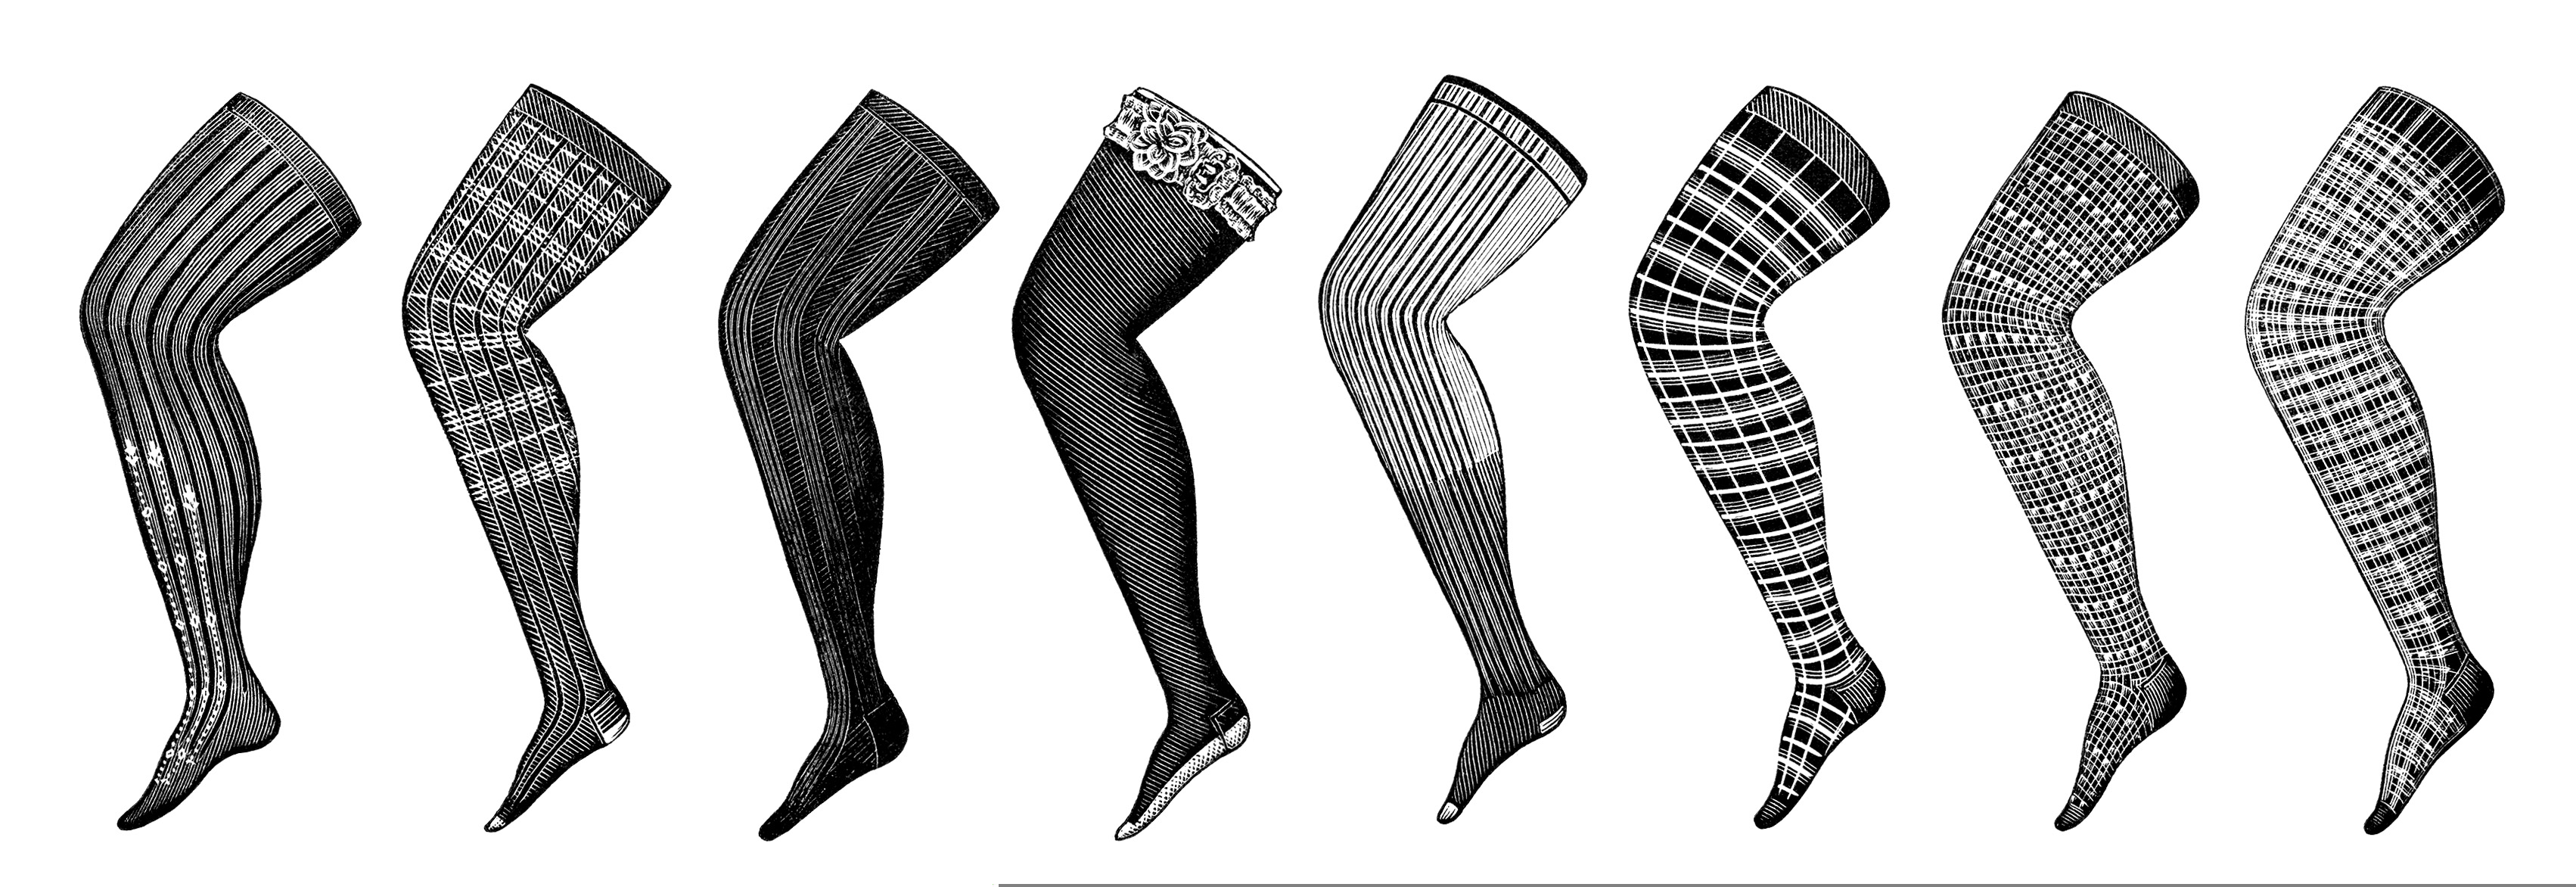 Leg Clipart Black And White